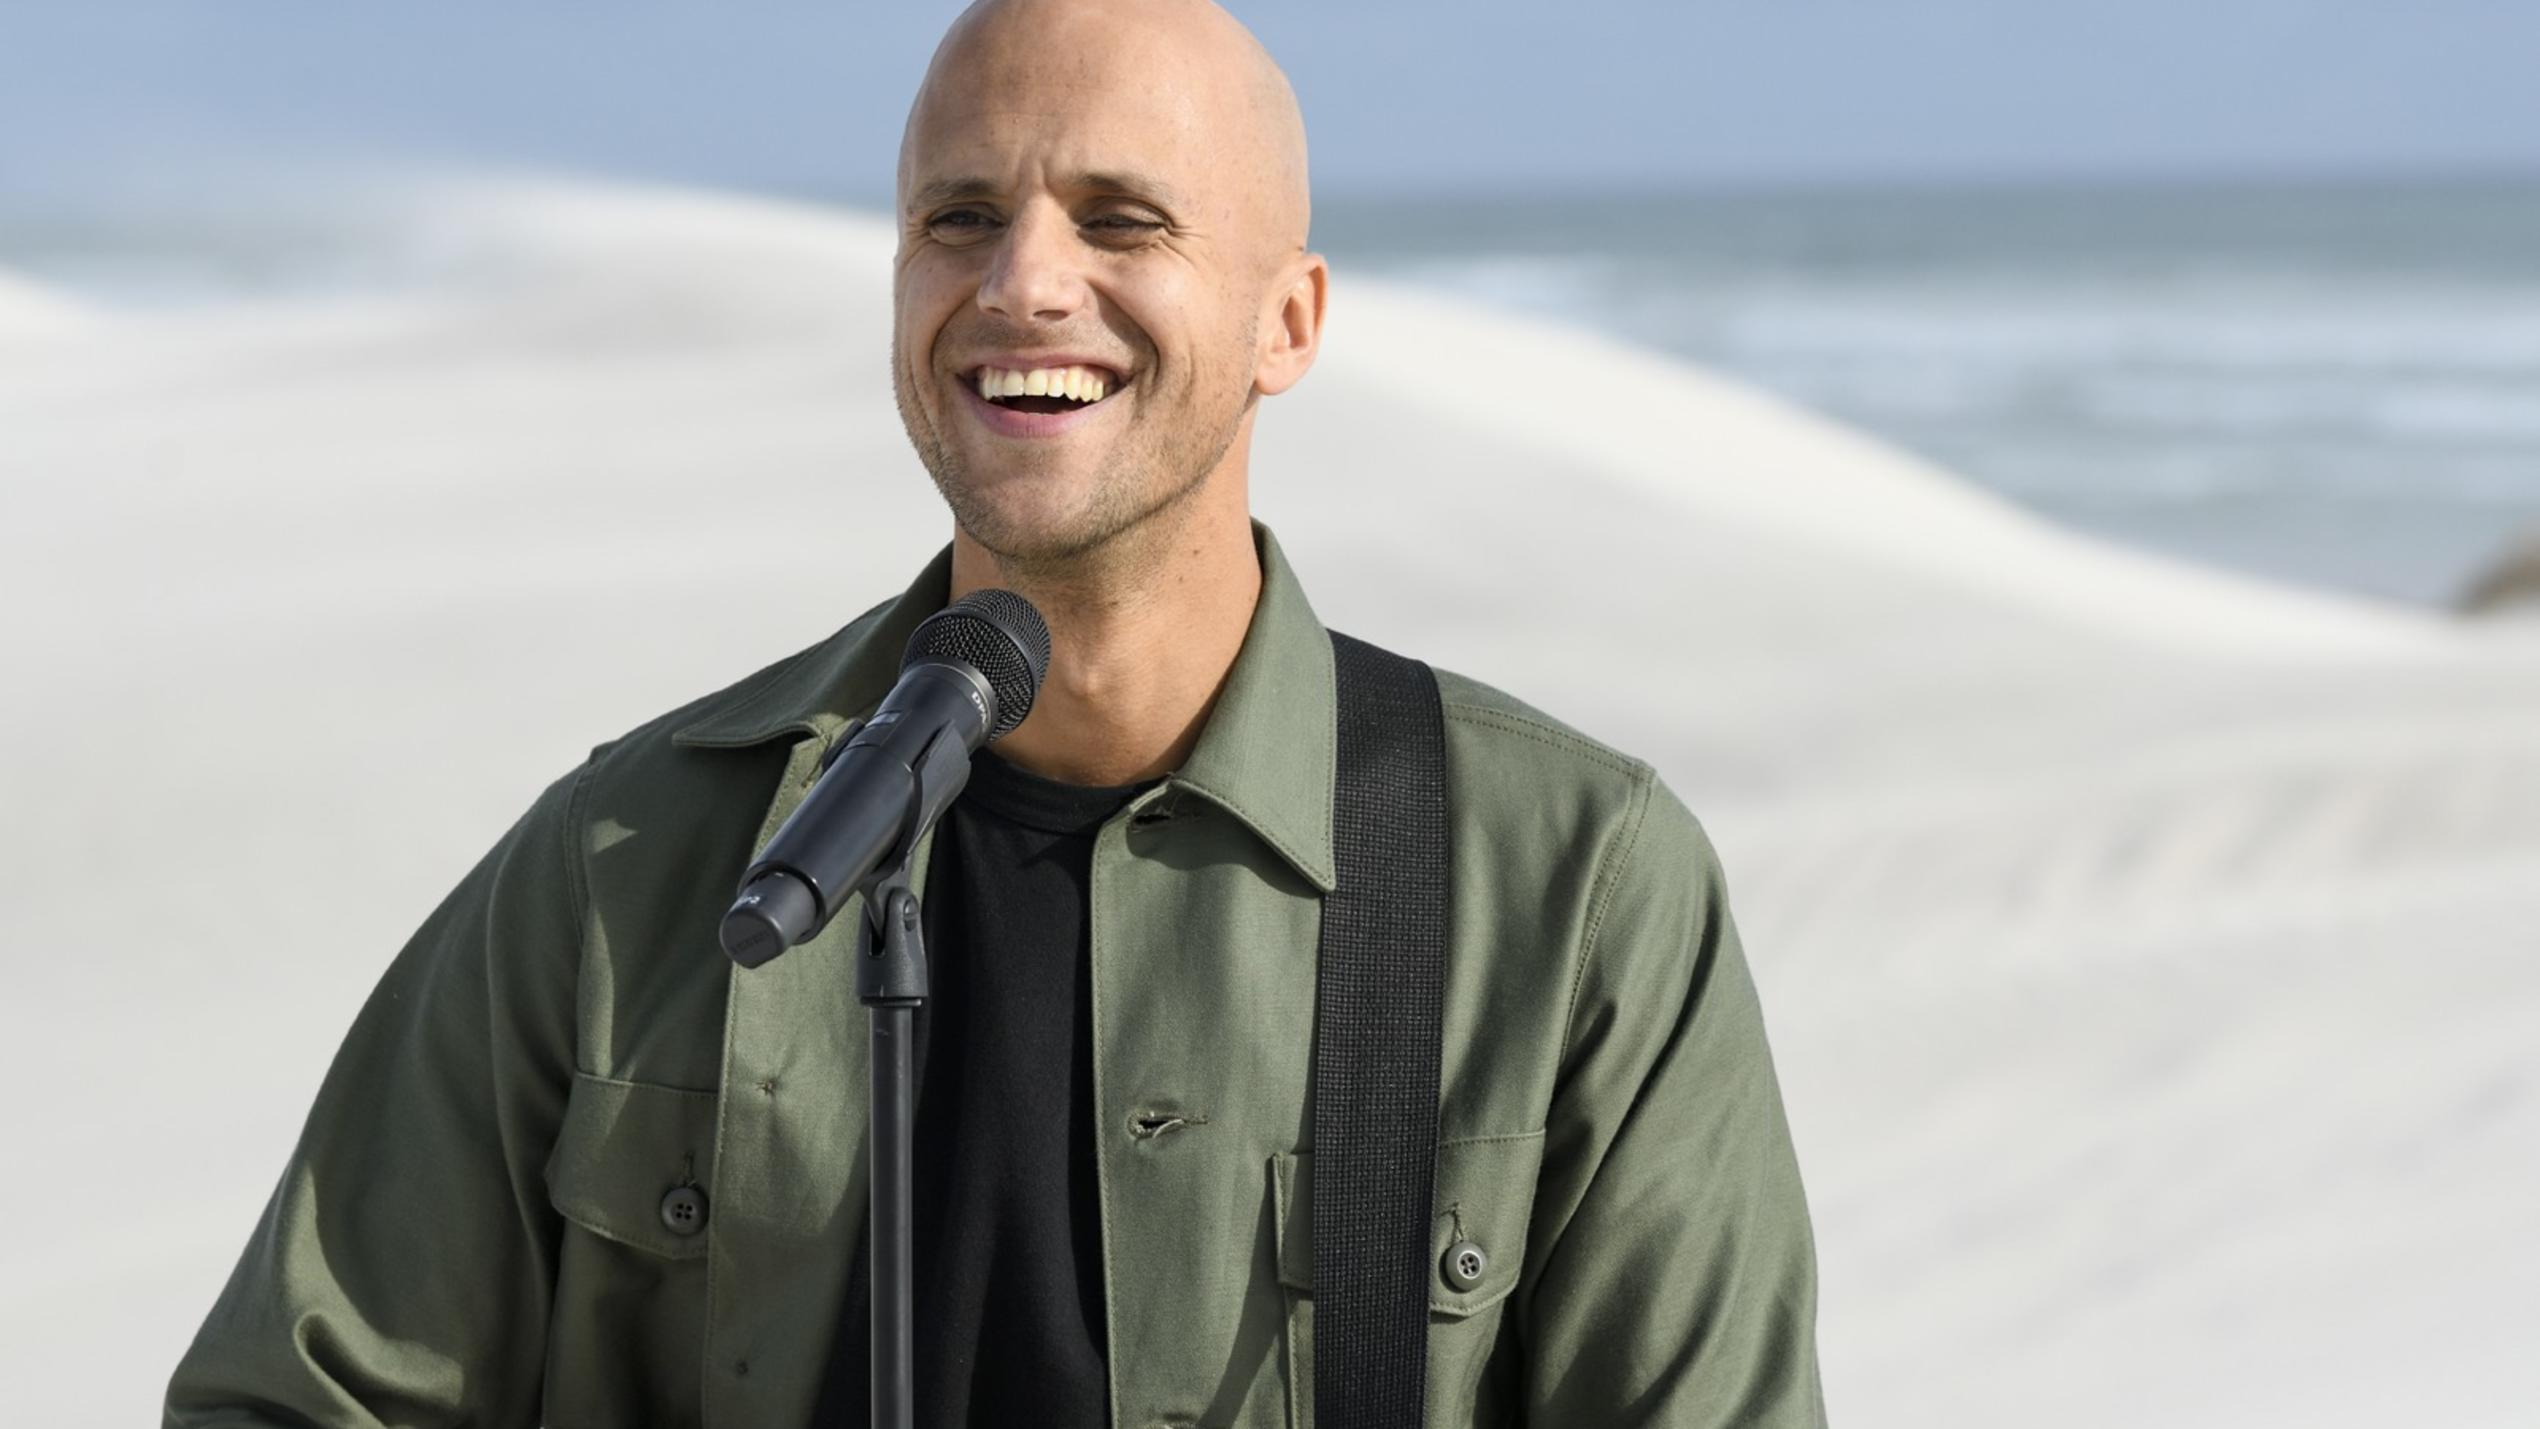 Milow im am 4. Juni im Livestream